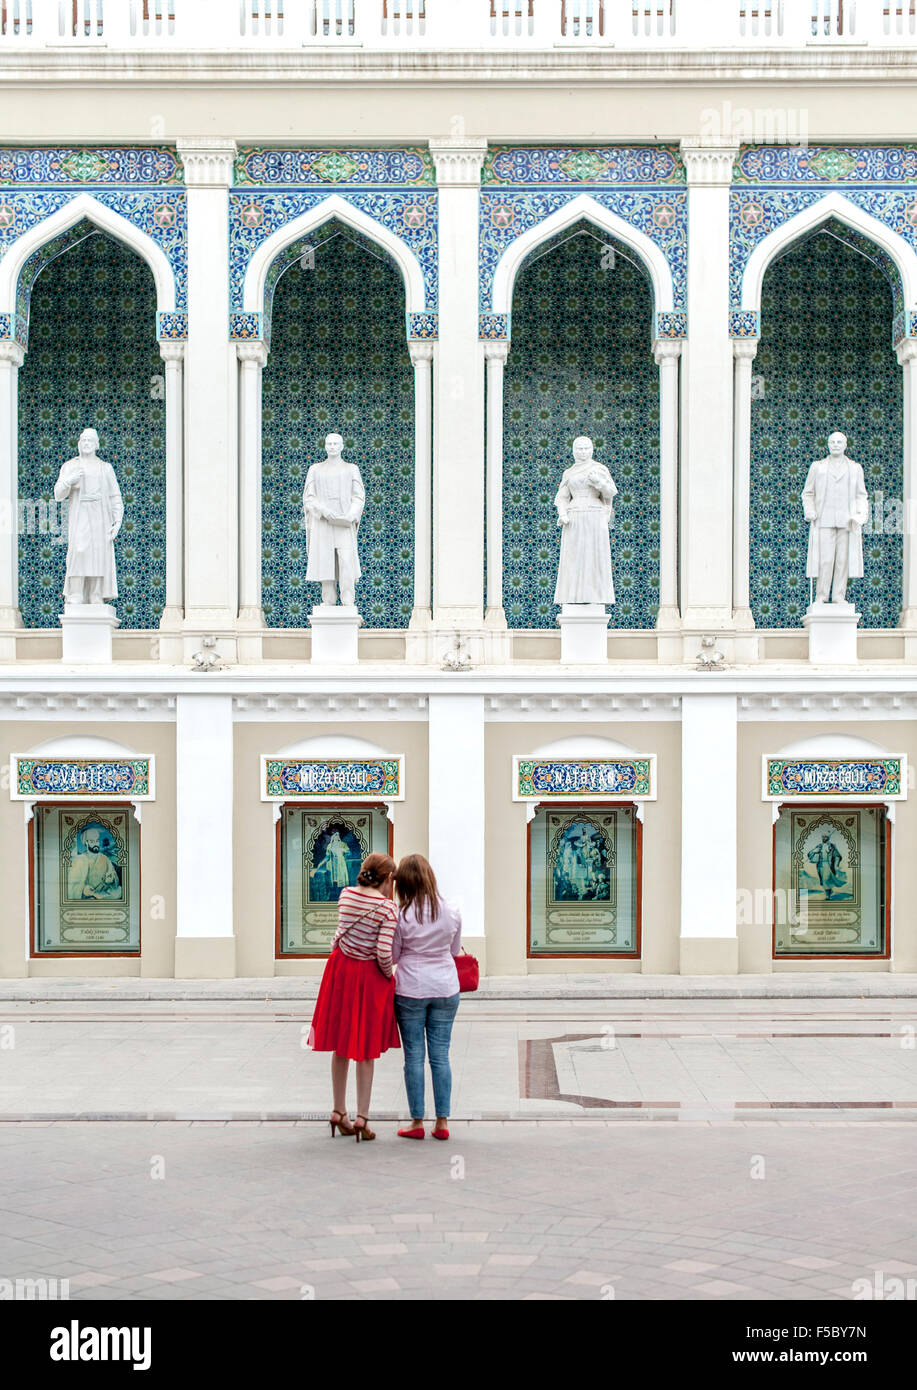 Two women standing in front of the Nizami Museum of Azerbaijan Literature in Baku. - Stock Image